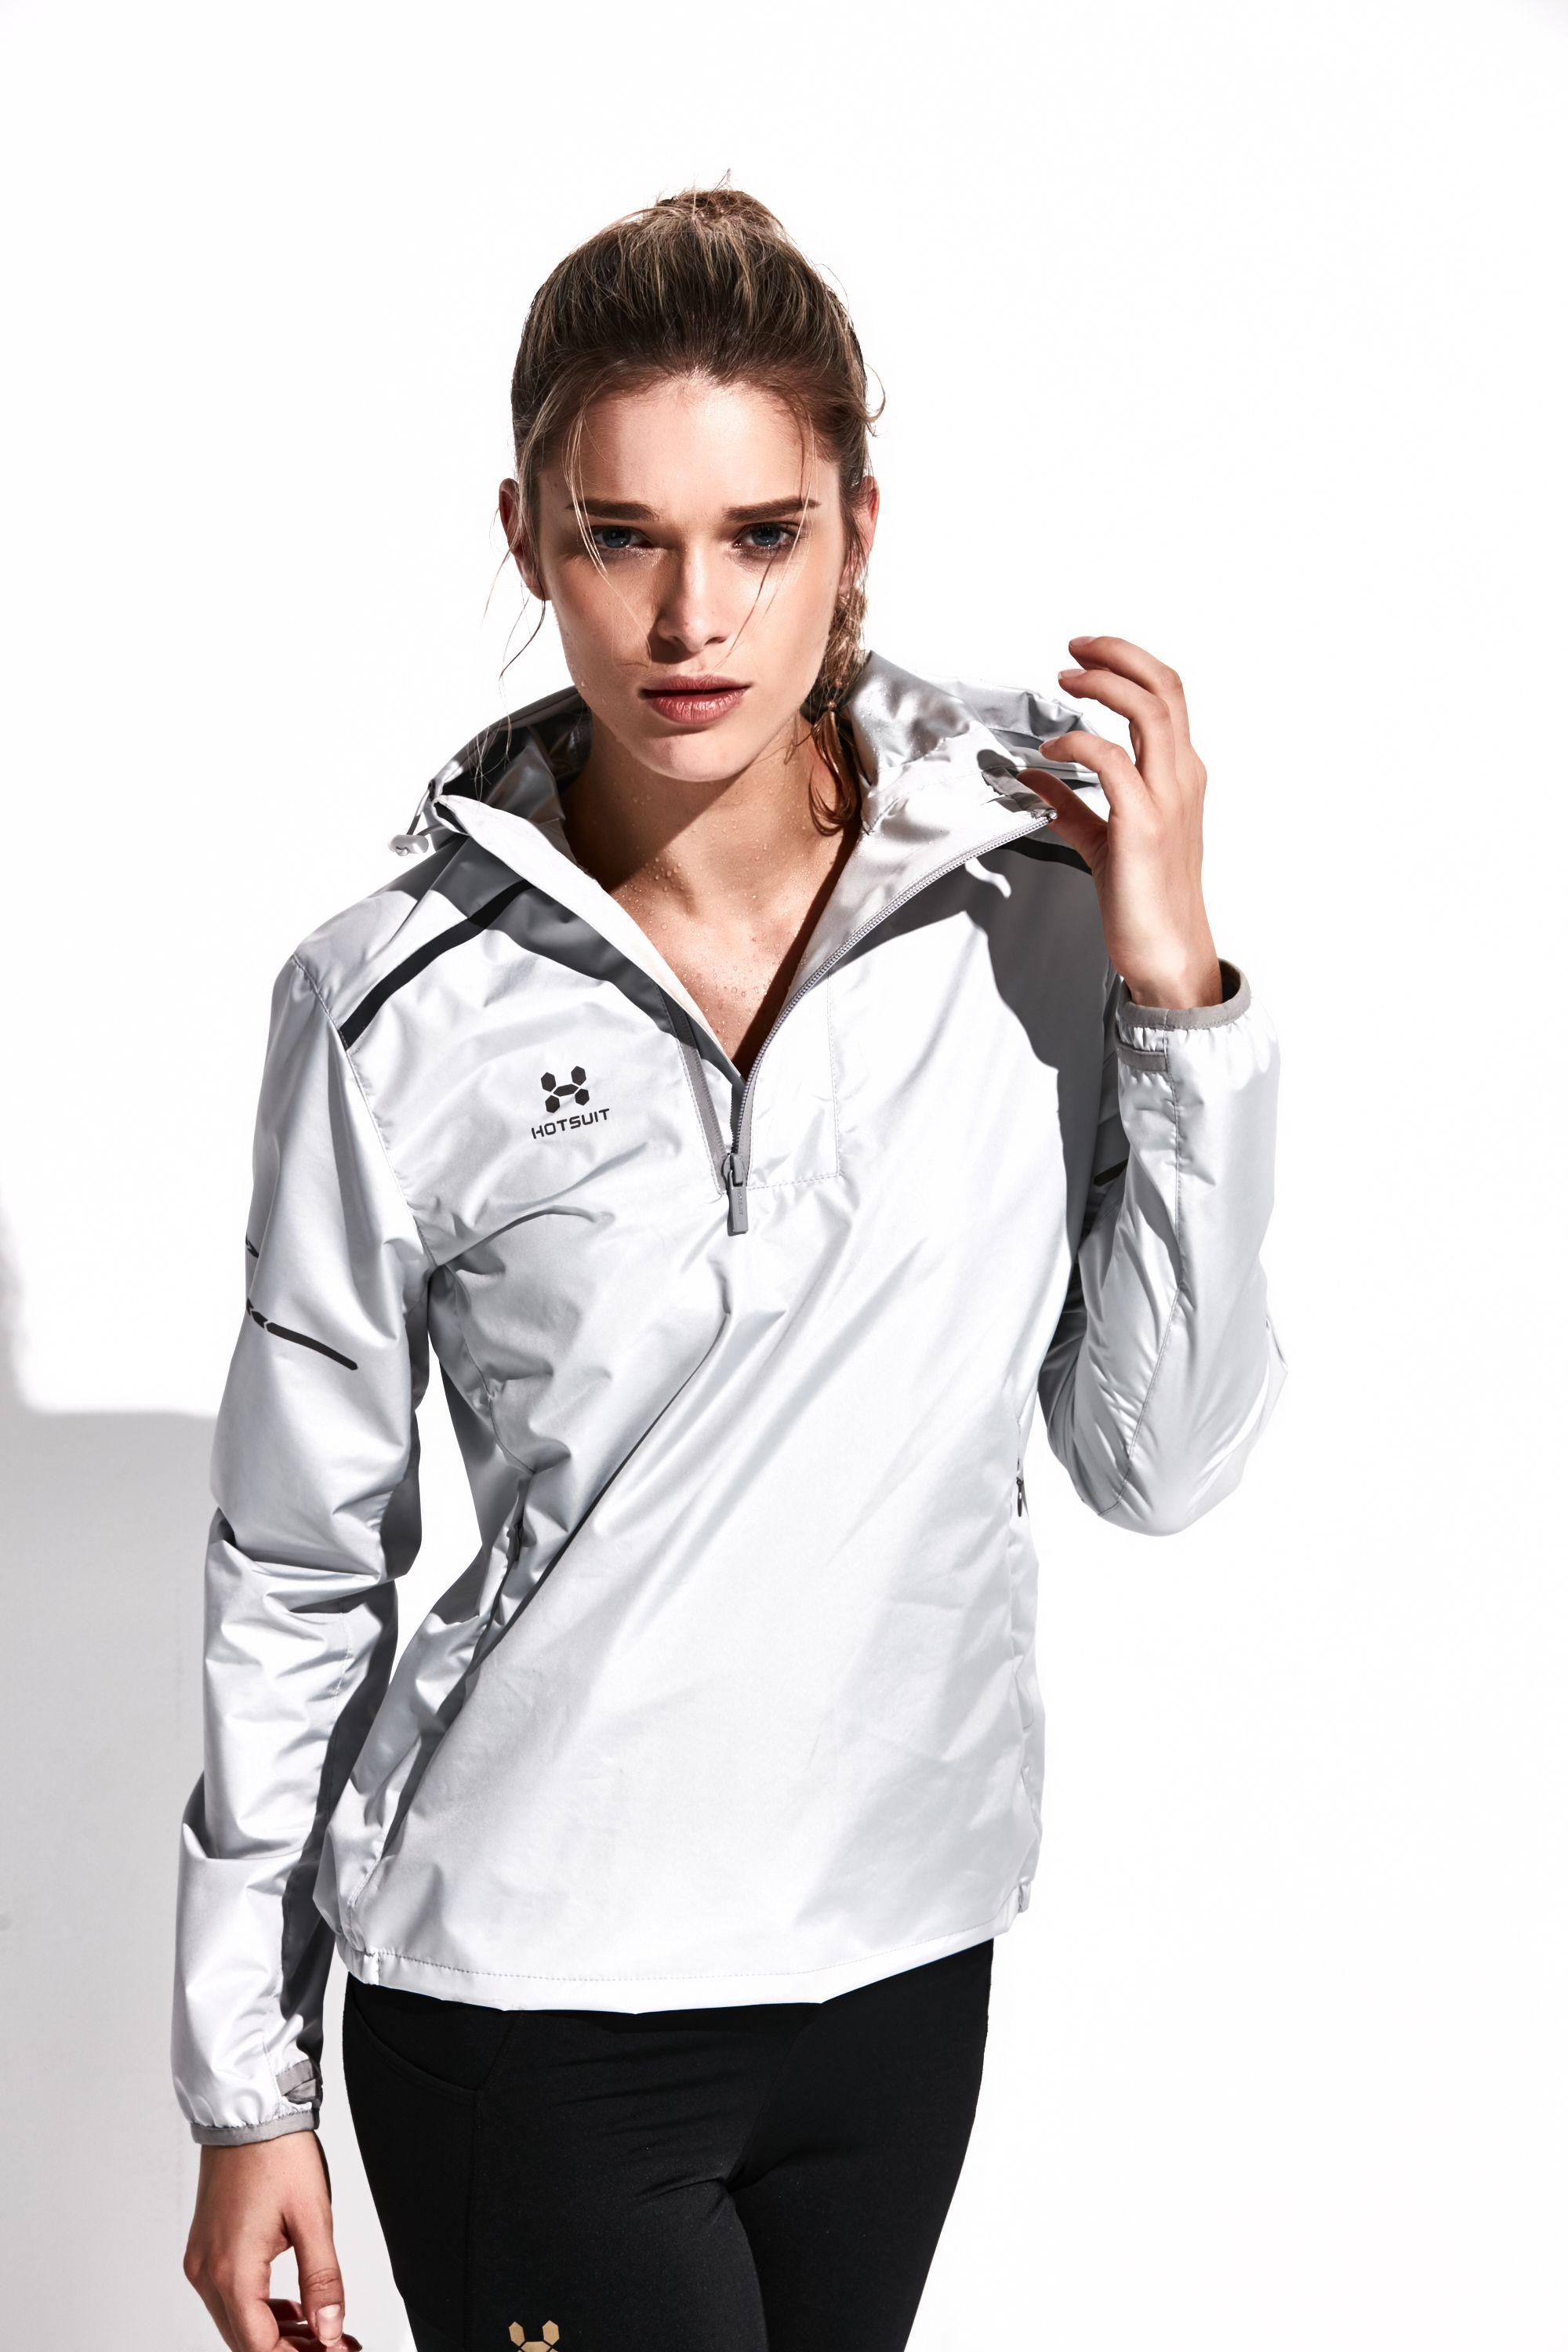 attractive designs variety of designs and colors choose clearance Hotsuit Sweat Suit, Revolutionary Sauna Suit | Hotsuit ...